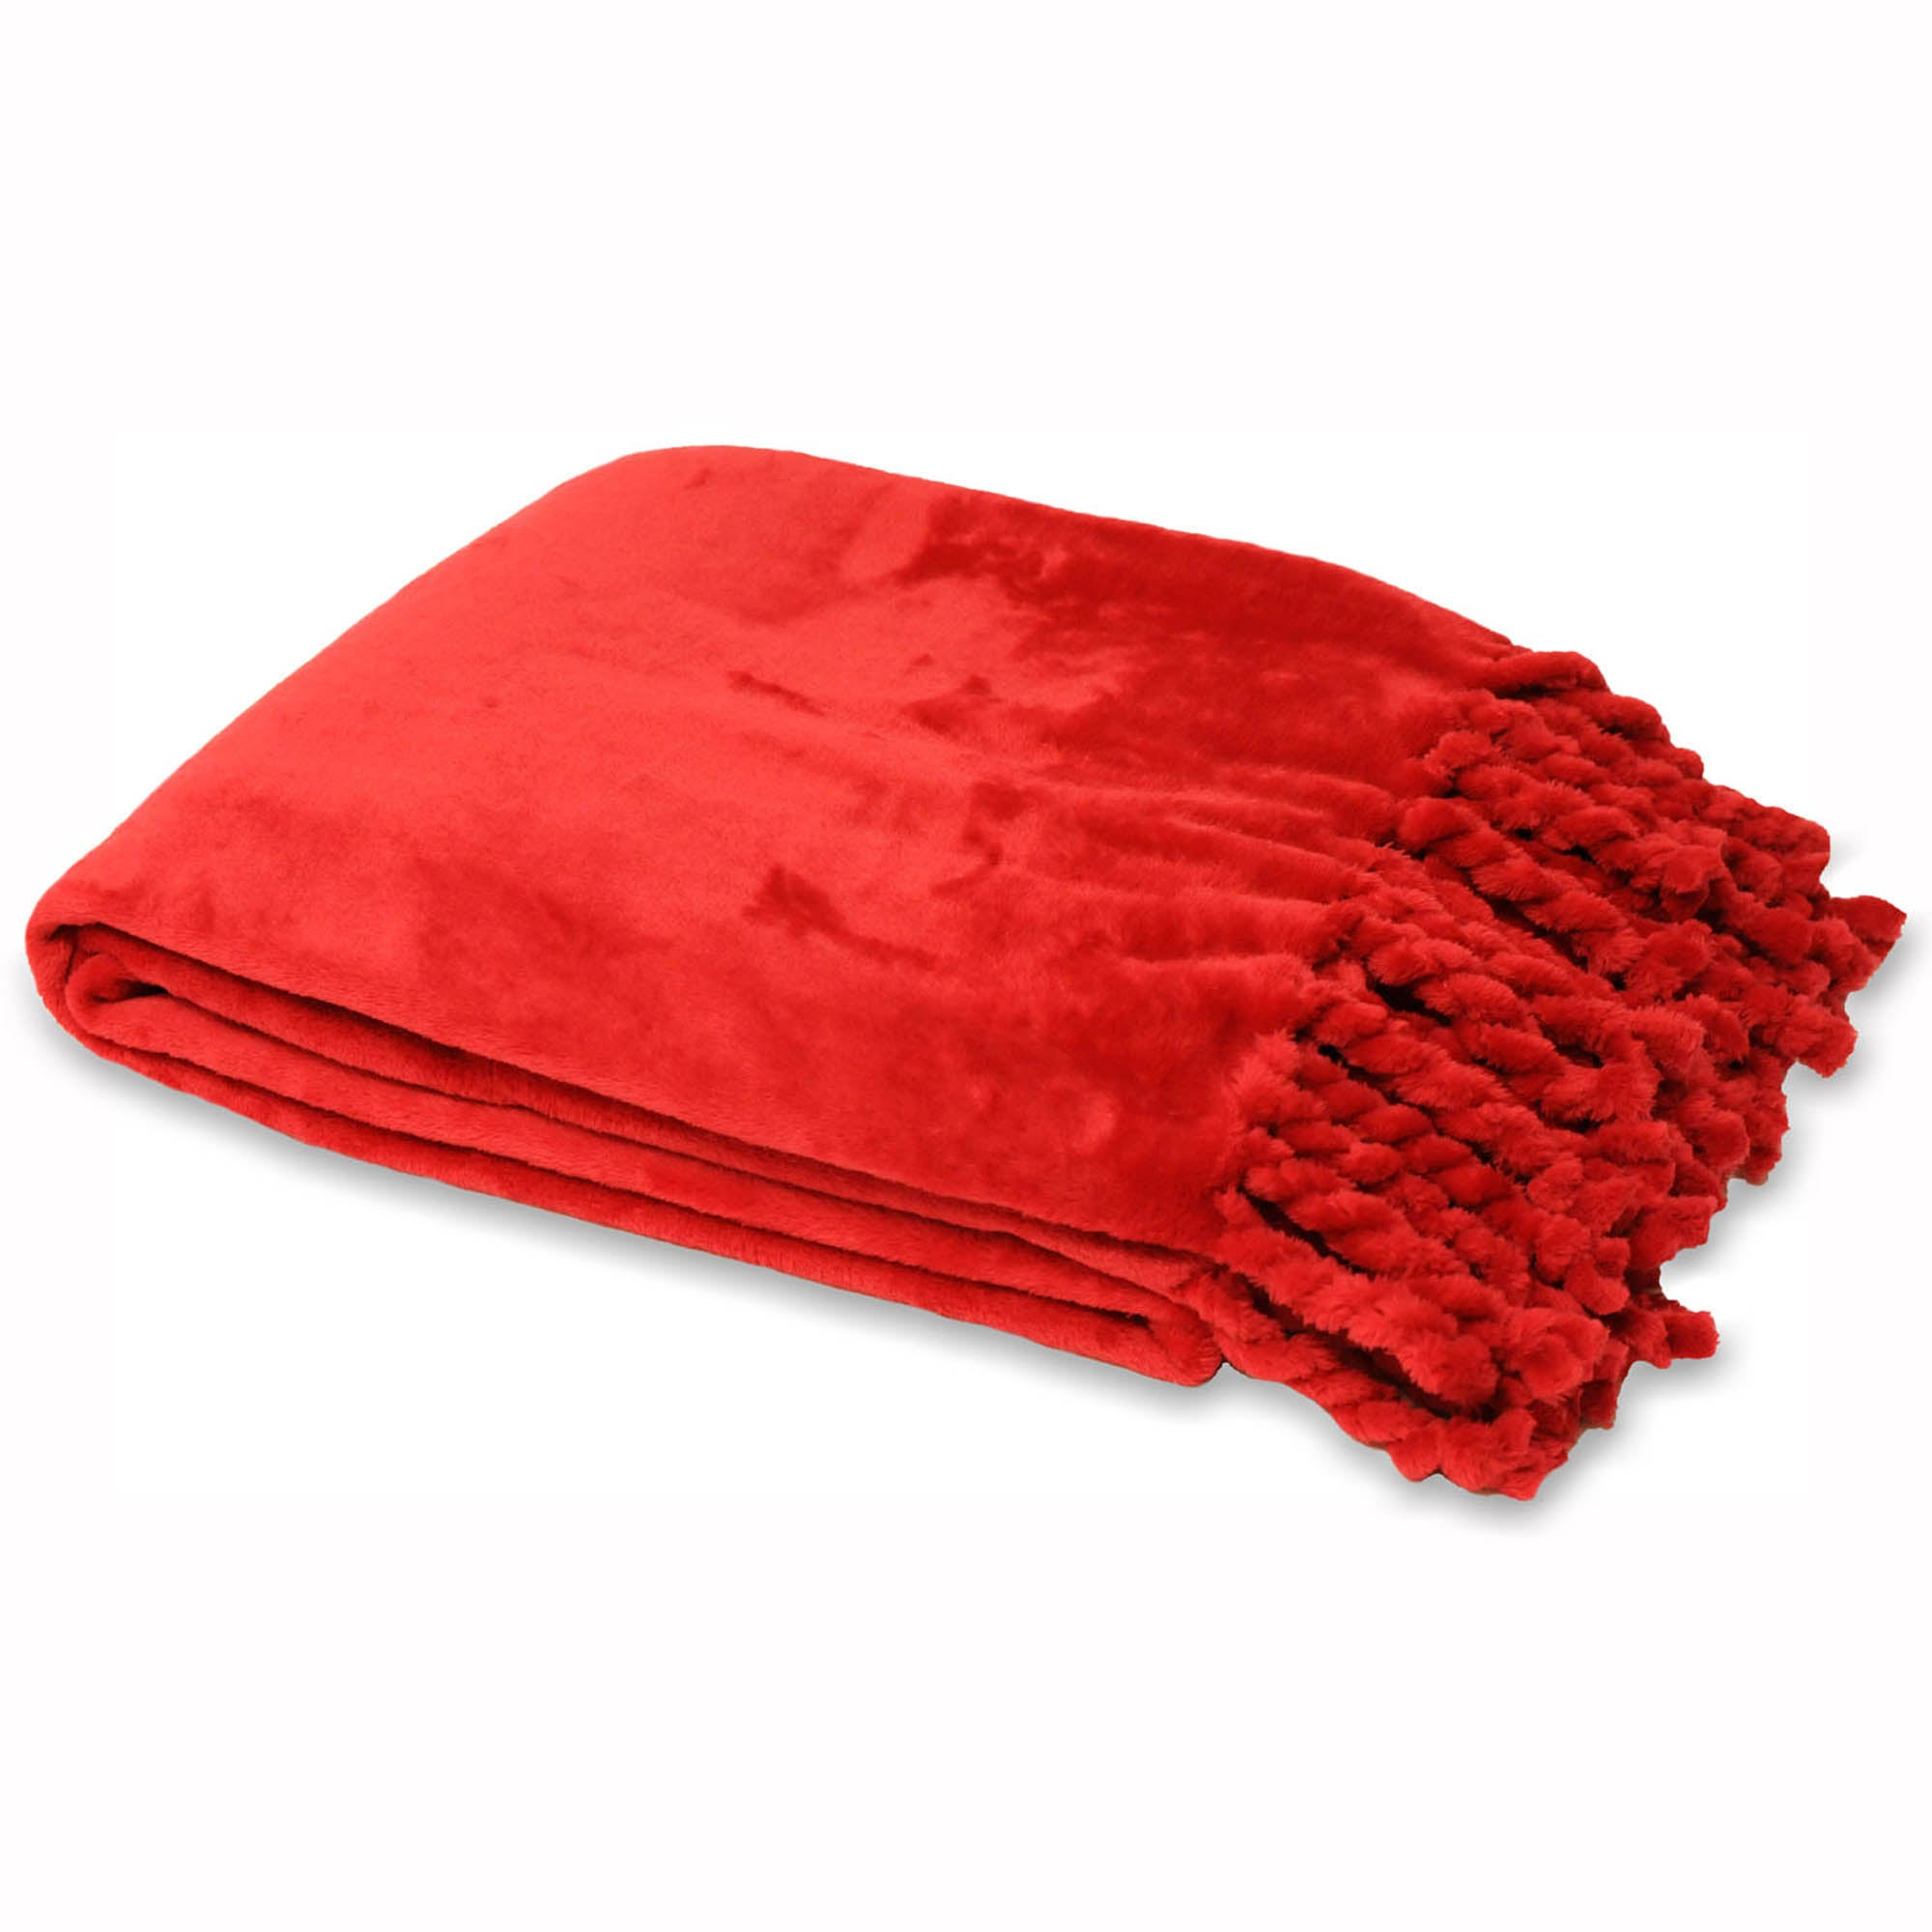 Photo of Dorset red throw red